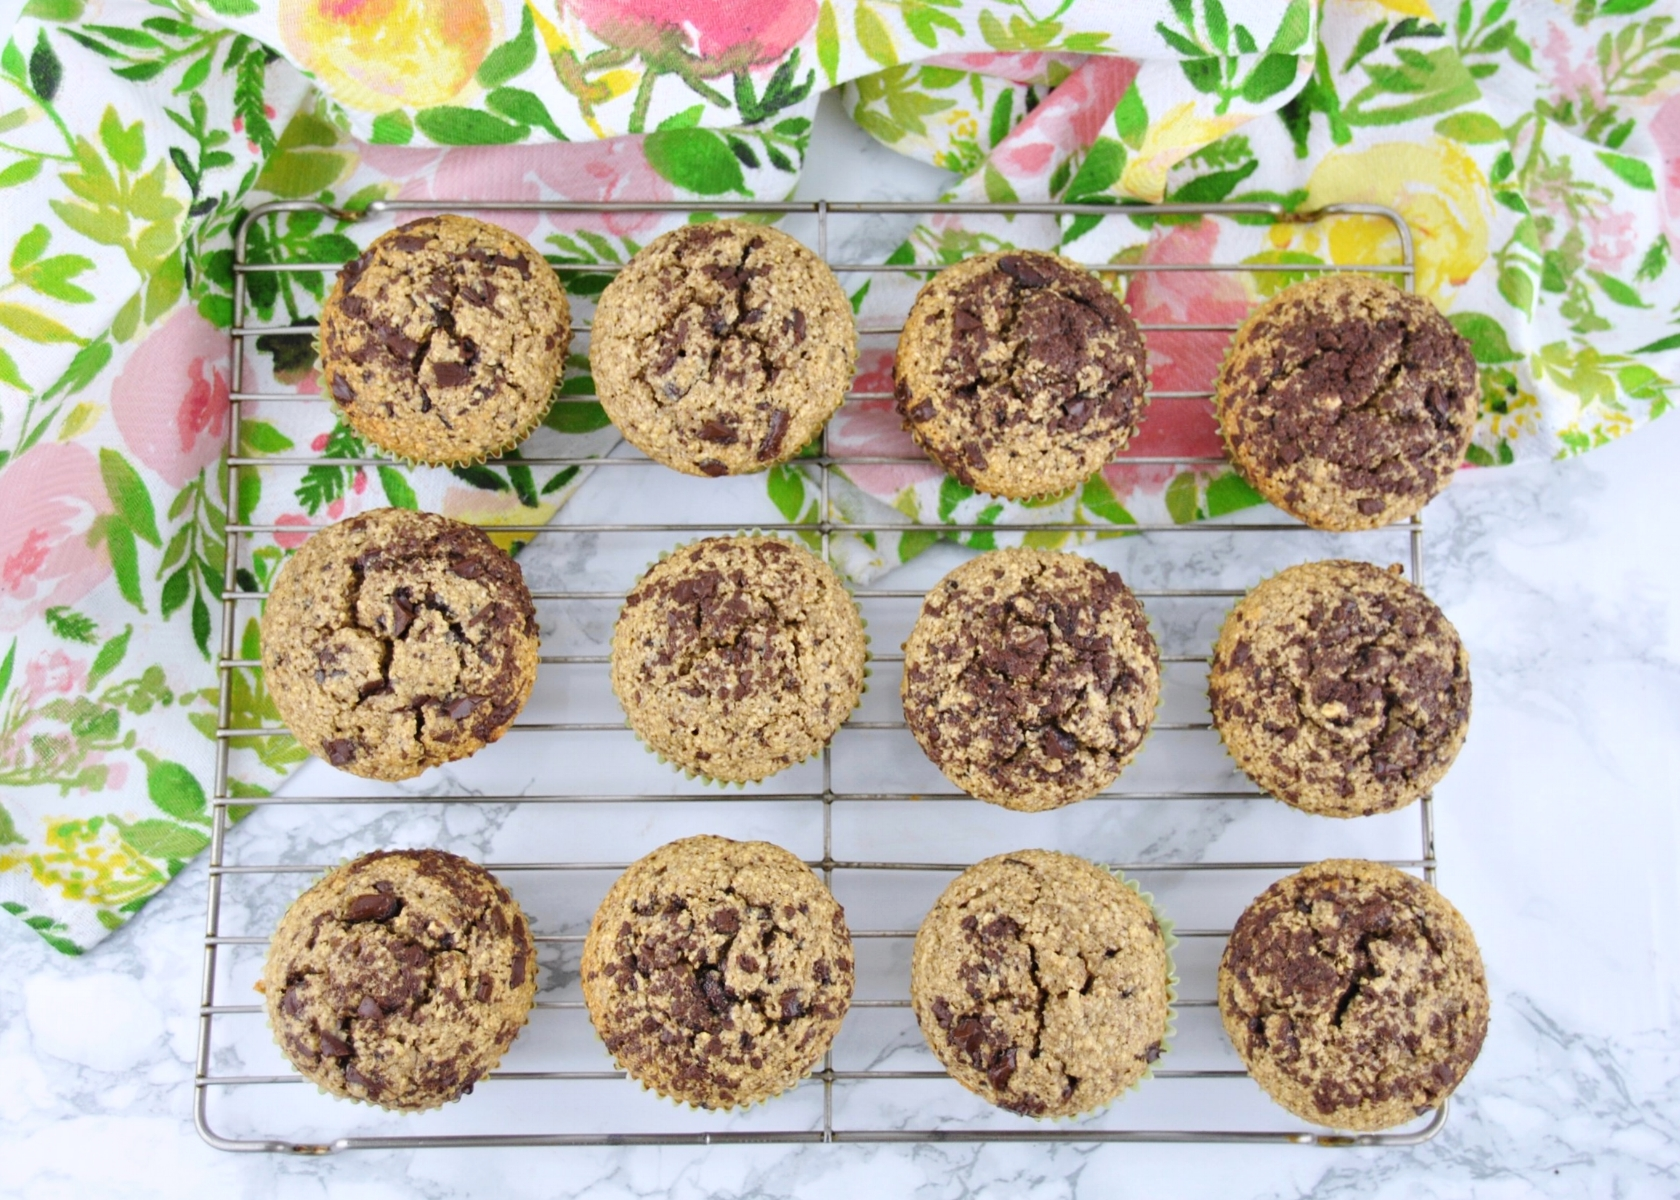 gluten-free, dairy-free, and refined sugar-free -